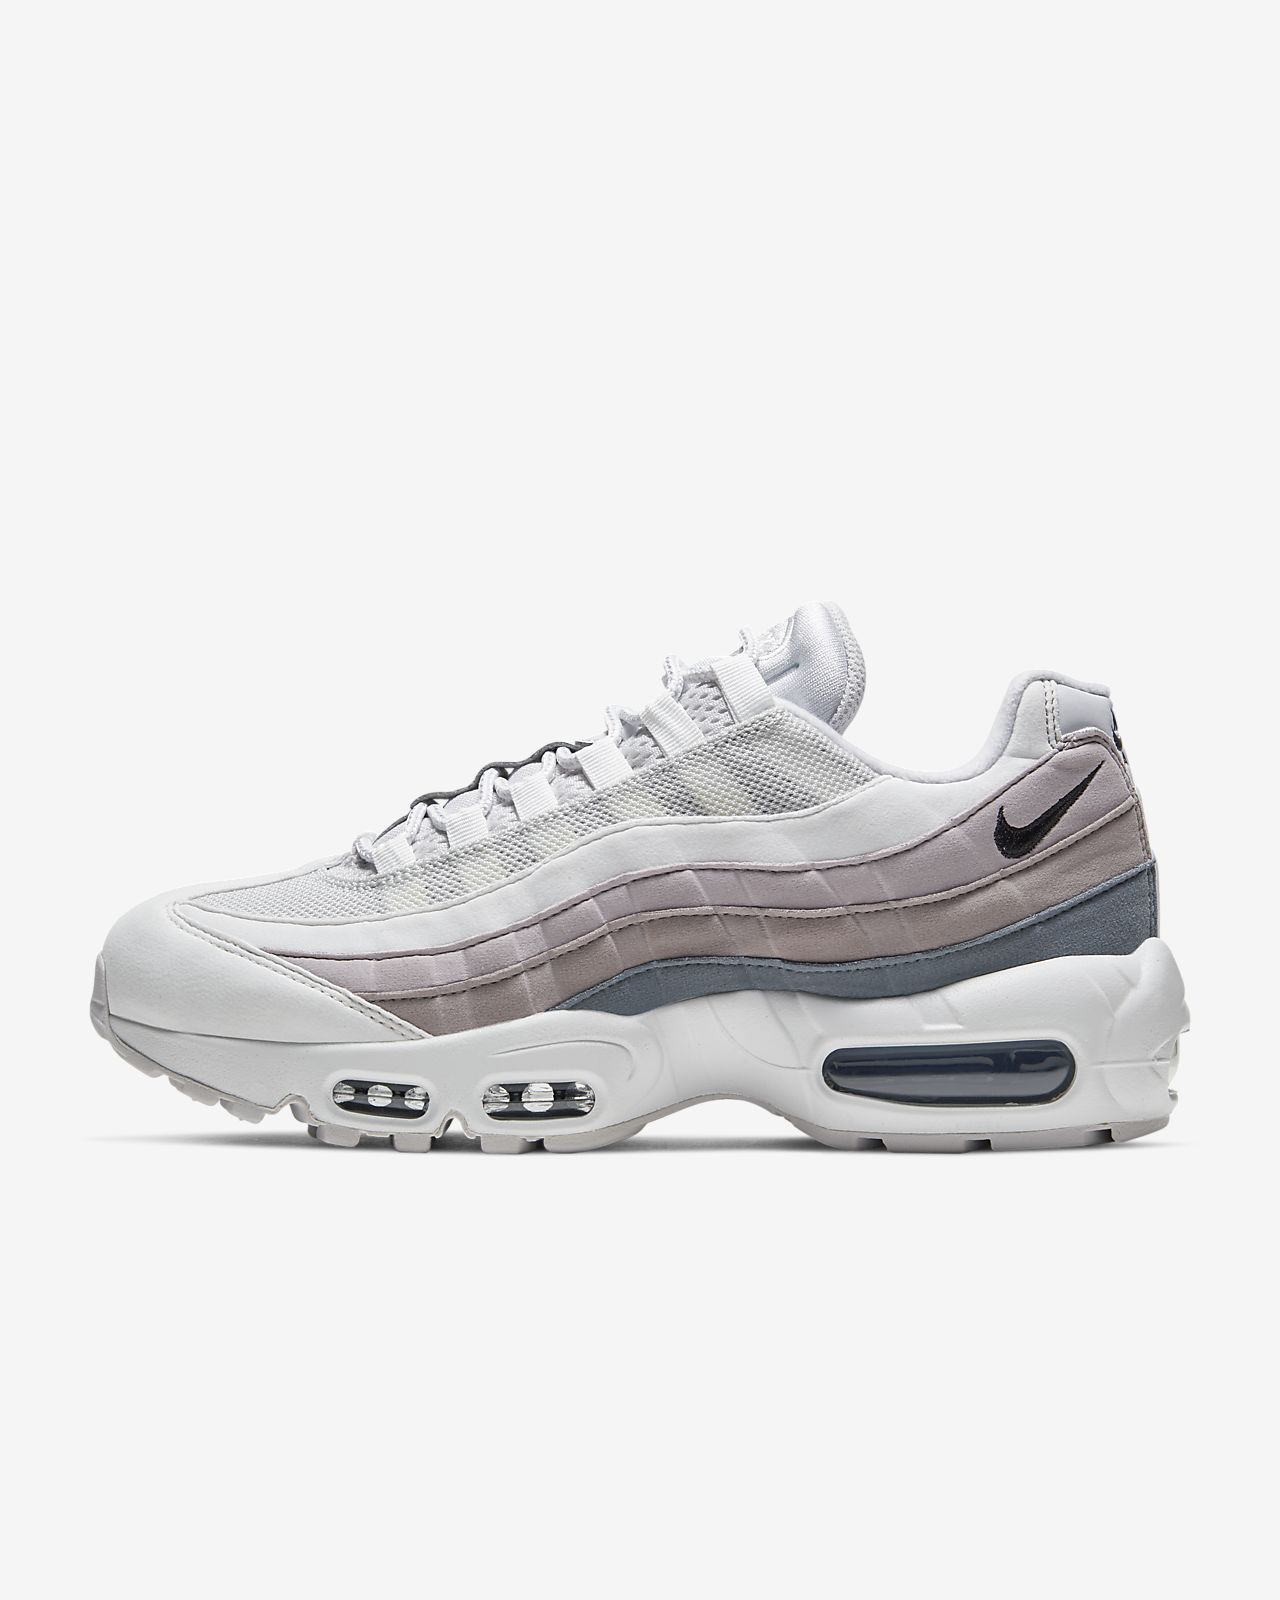 separation shoes eaec7 0a7b3 Women s Shoe. Nike Air Max 95